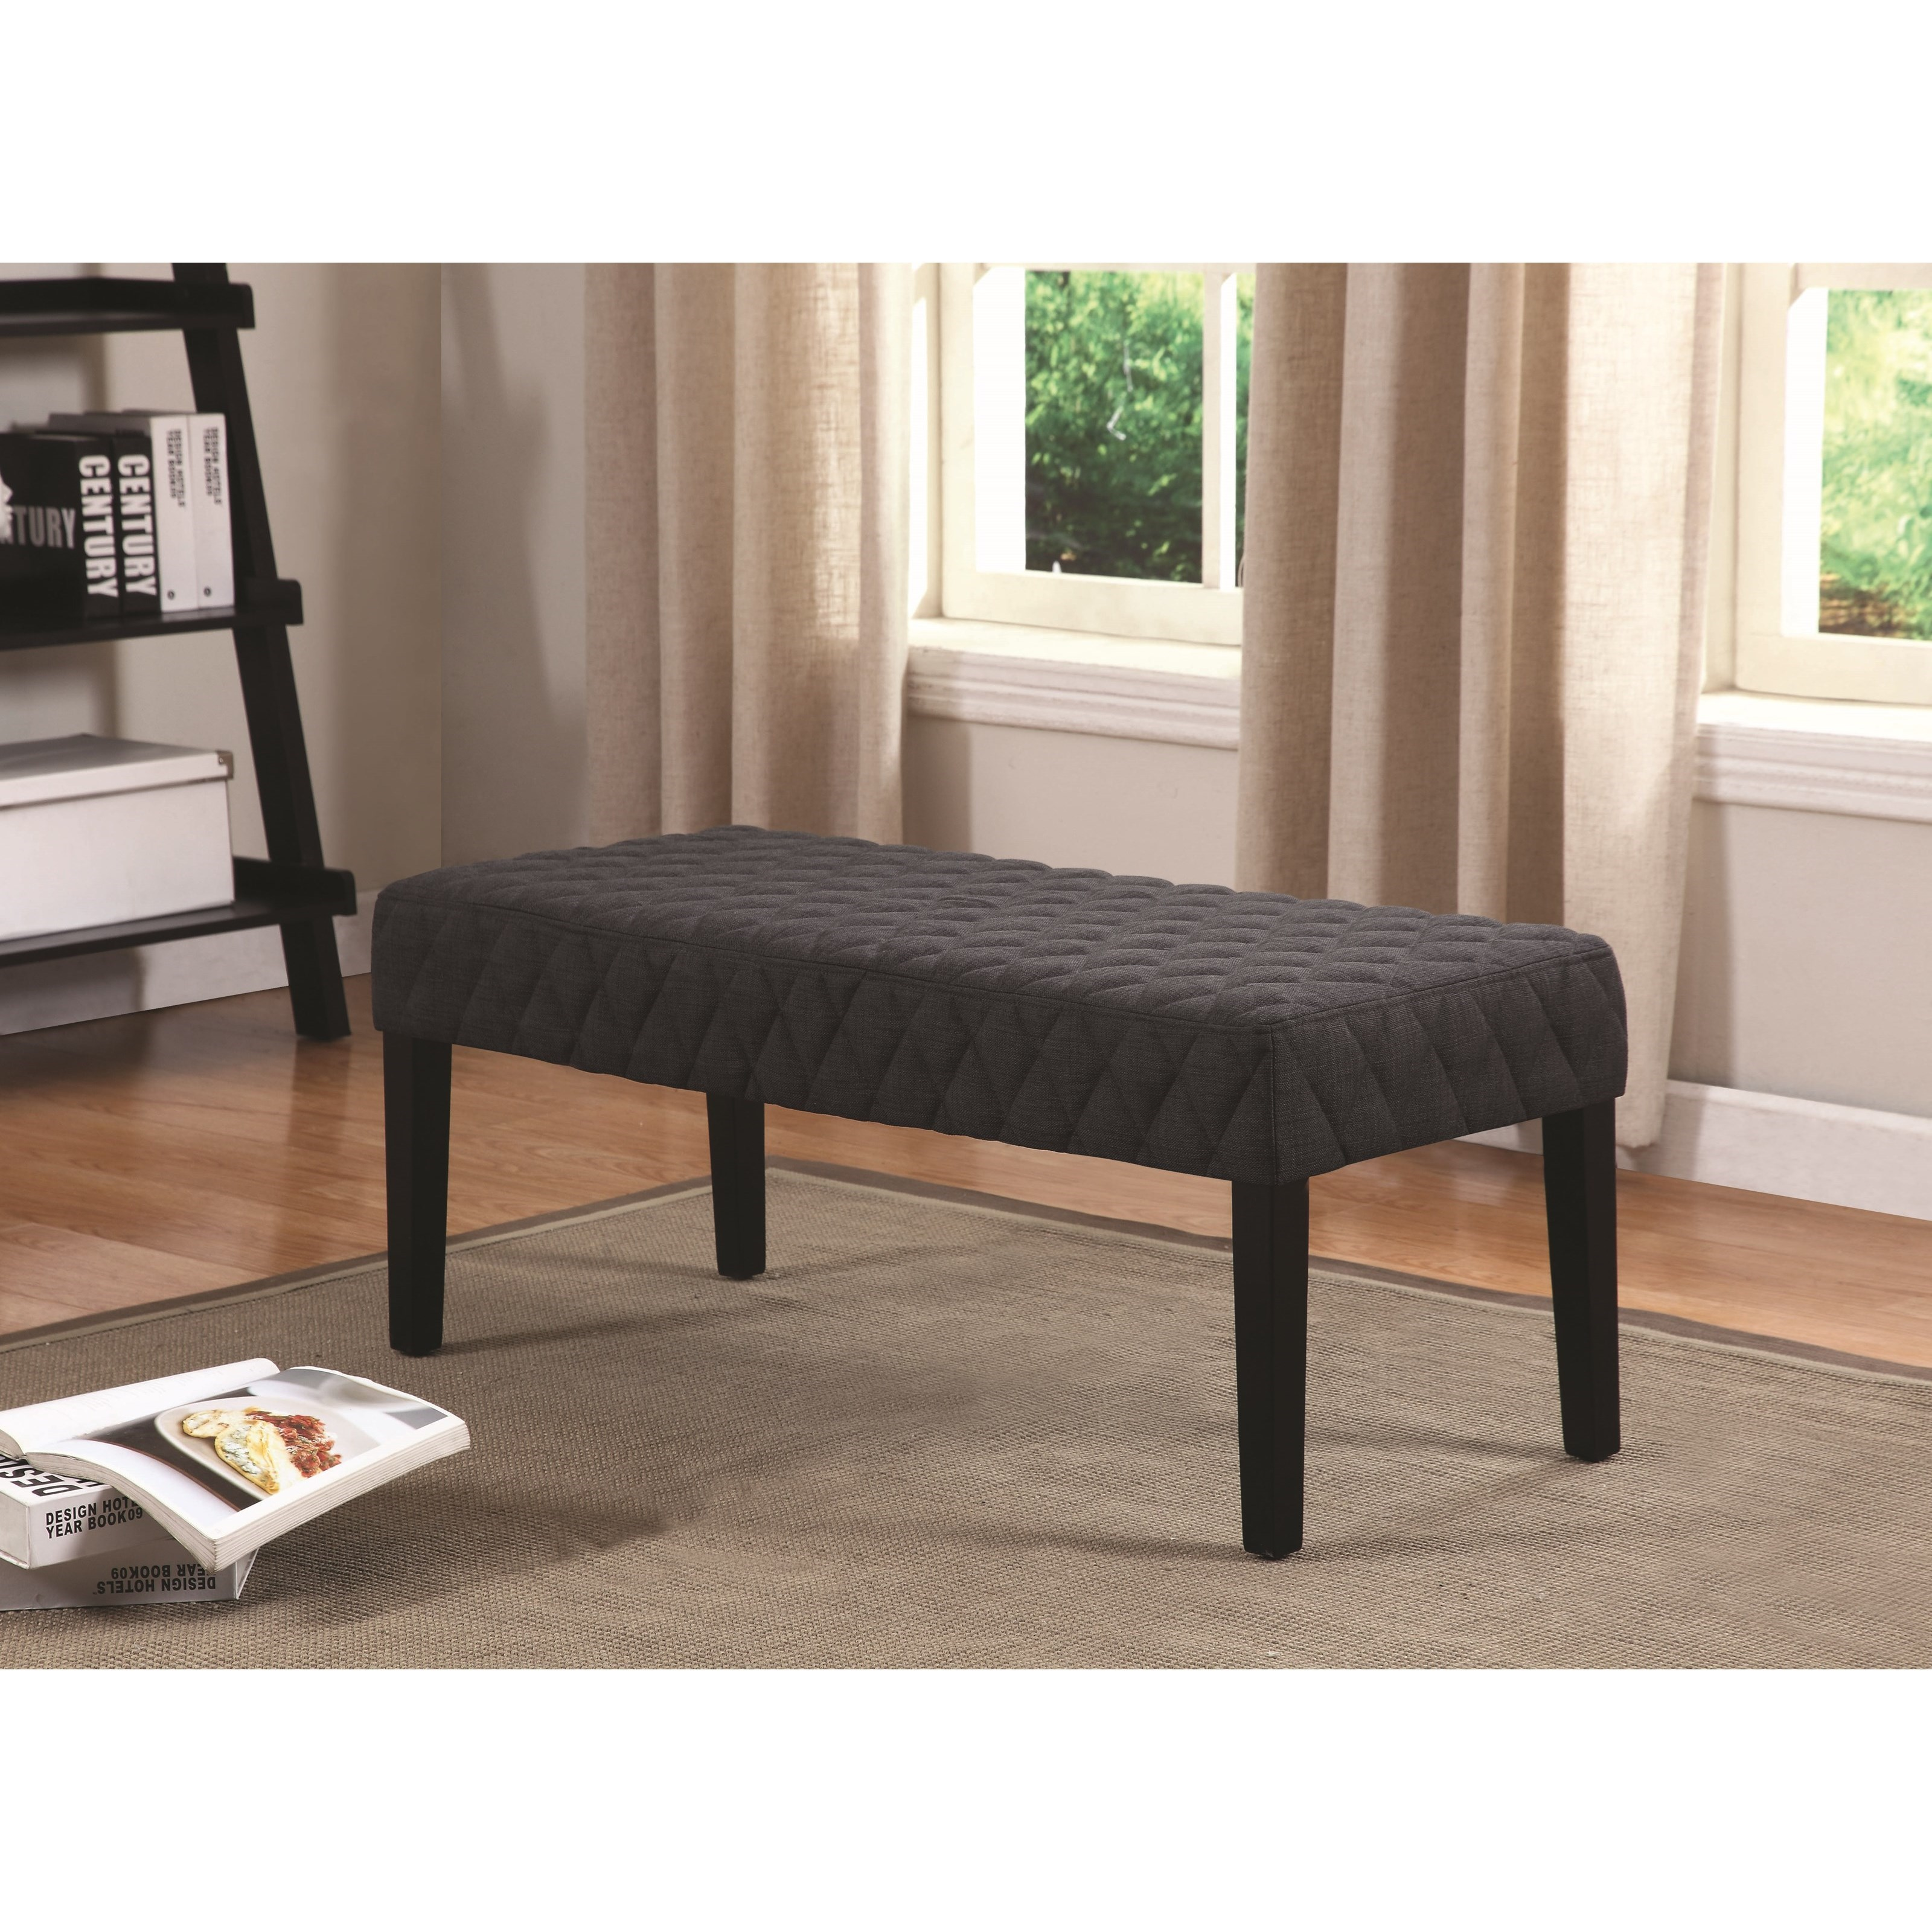 Coaster Benches Bench - Item Number: 500288